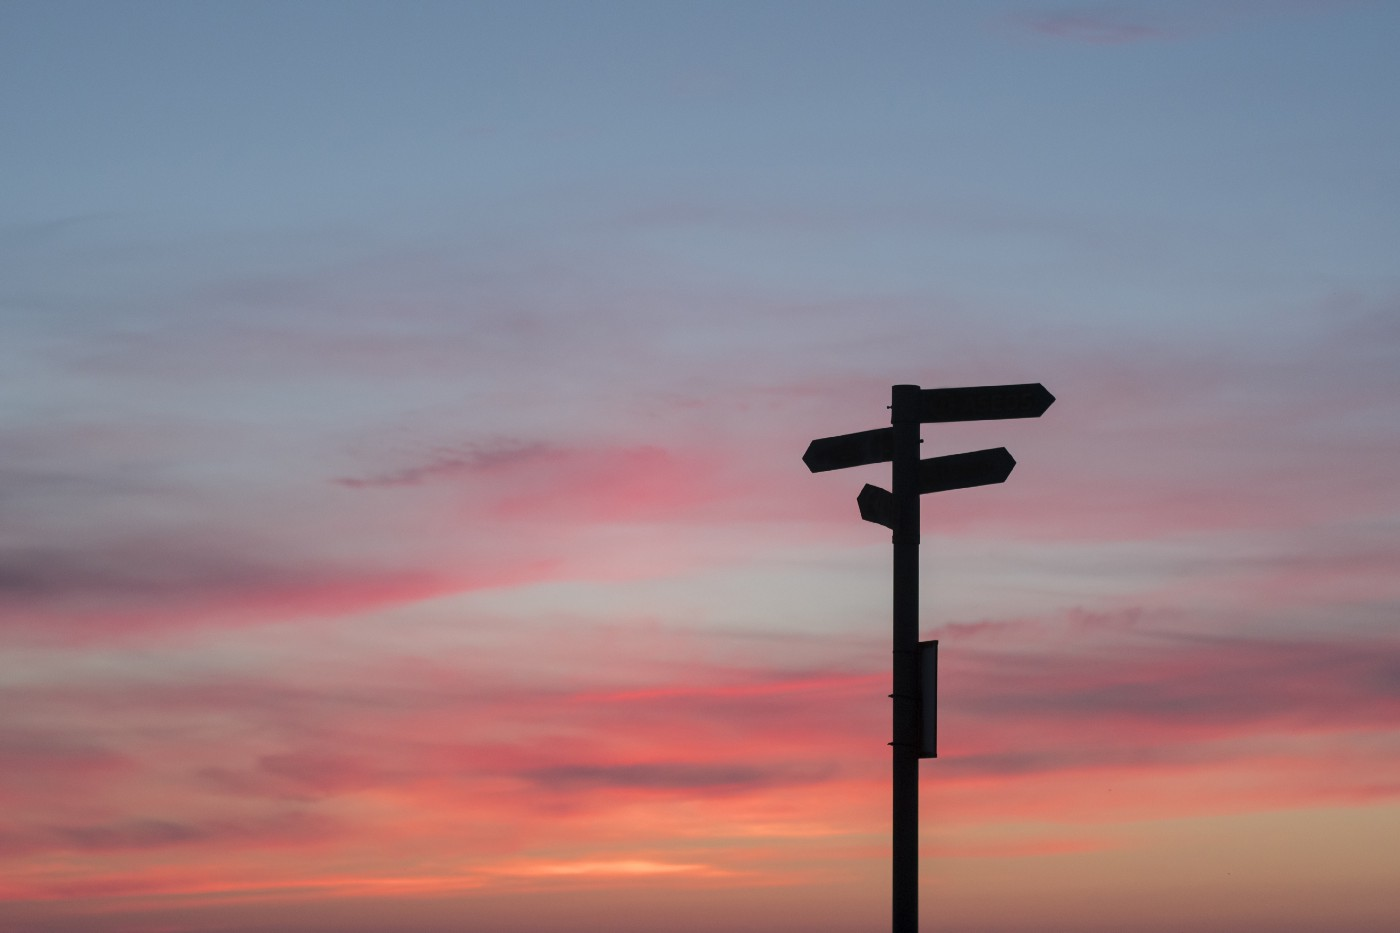 A sign post silhouetted against the twilight sky with orange-pink clouds.